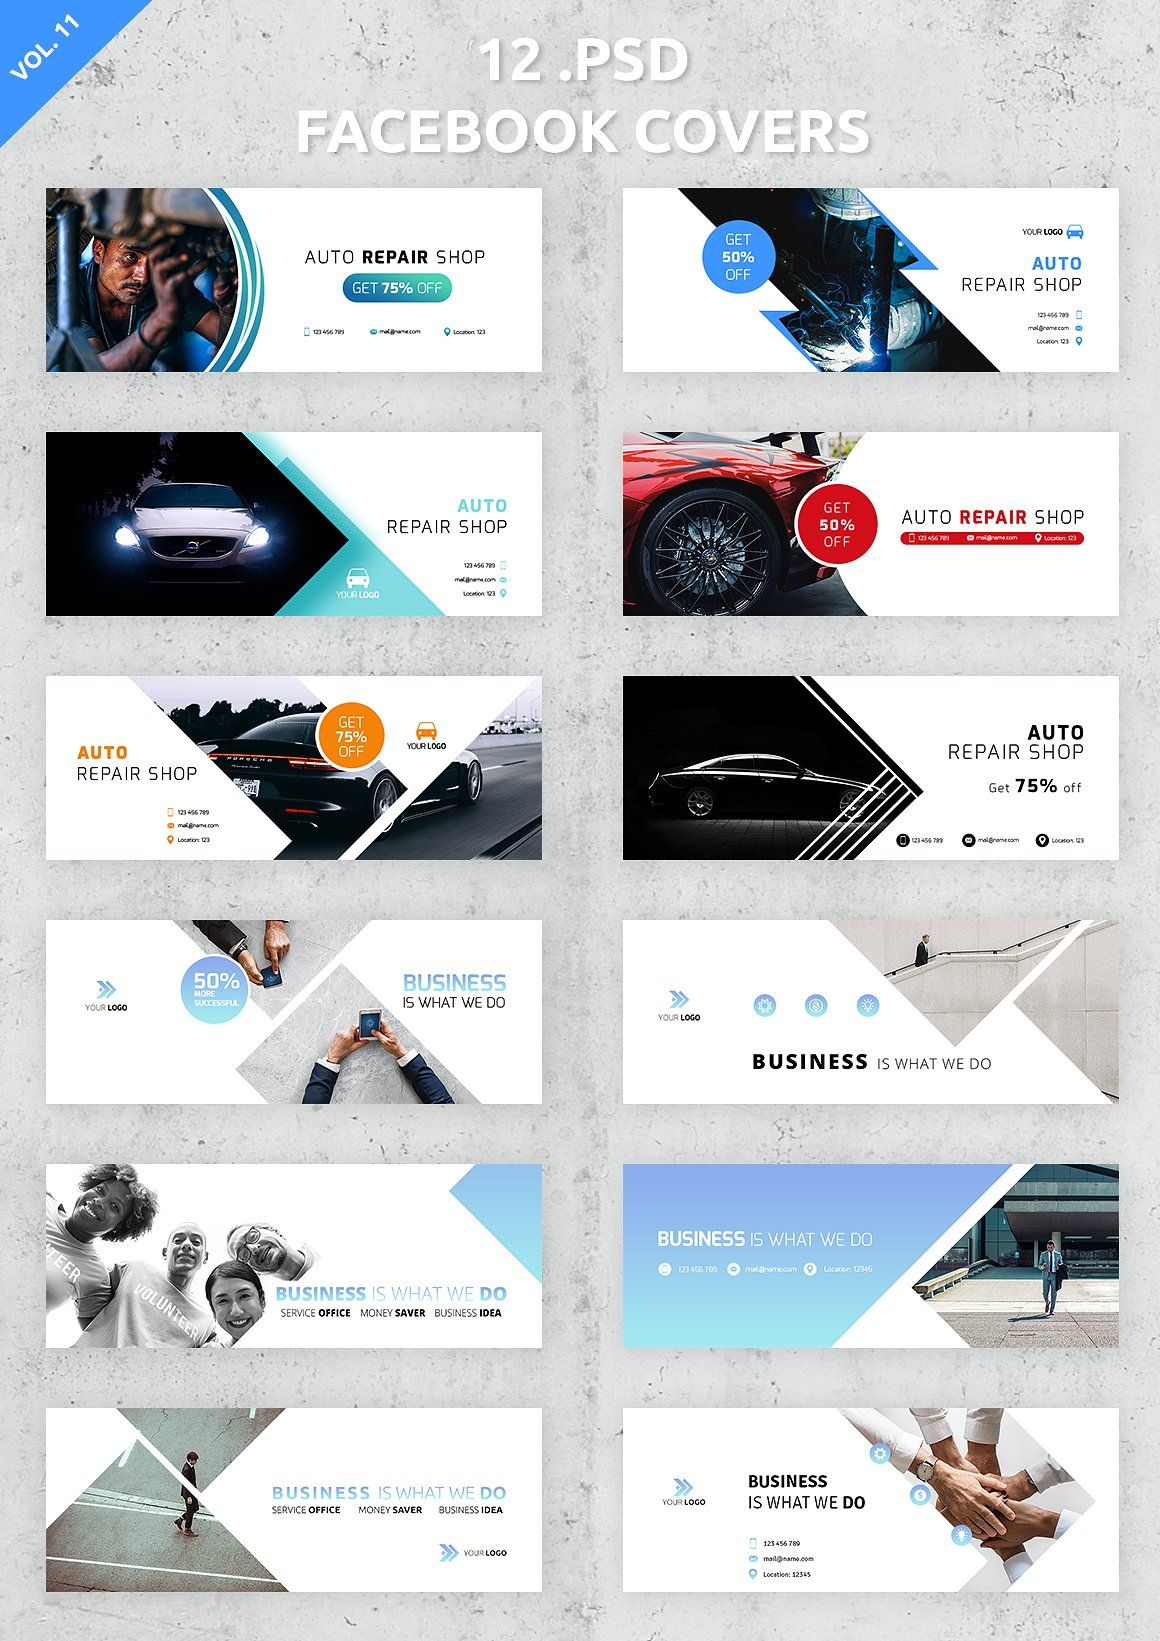 12 Facebook Covers By Unik Agency On Creativemarket